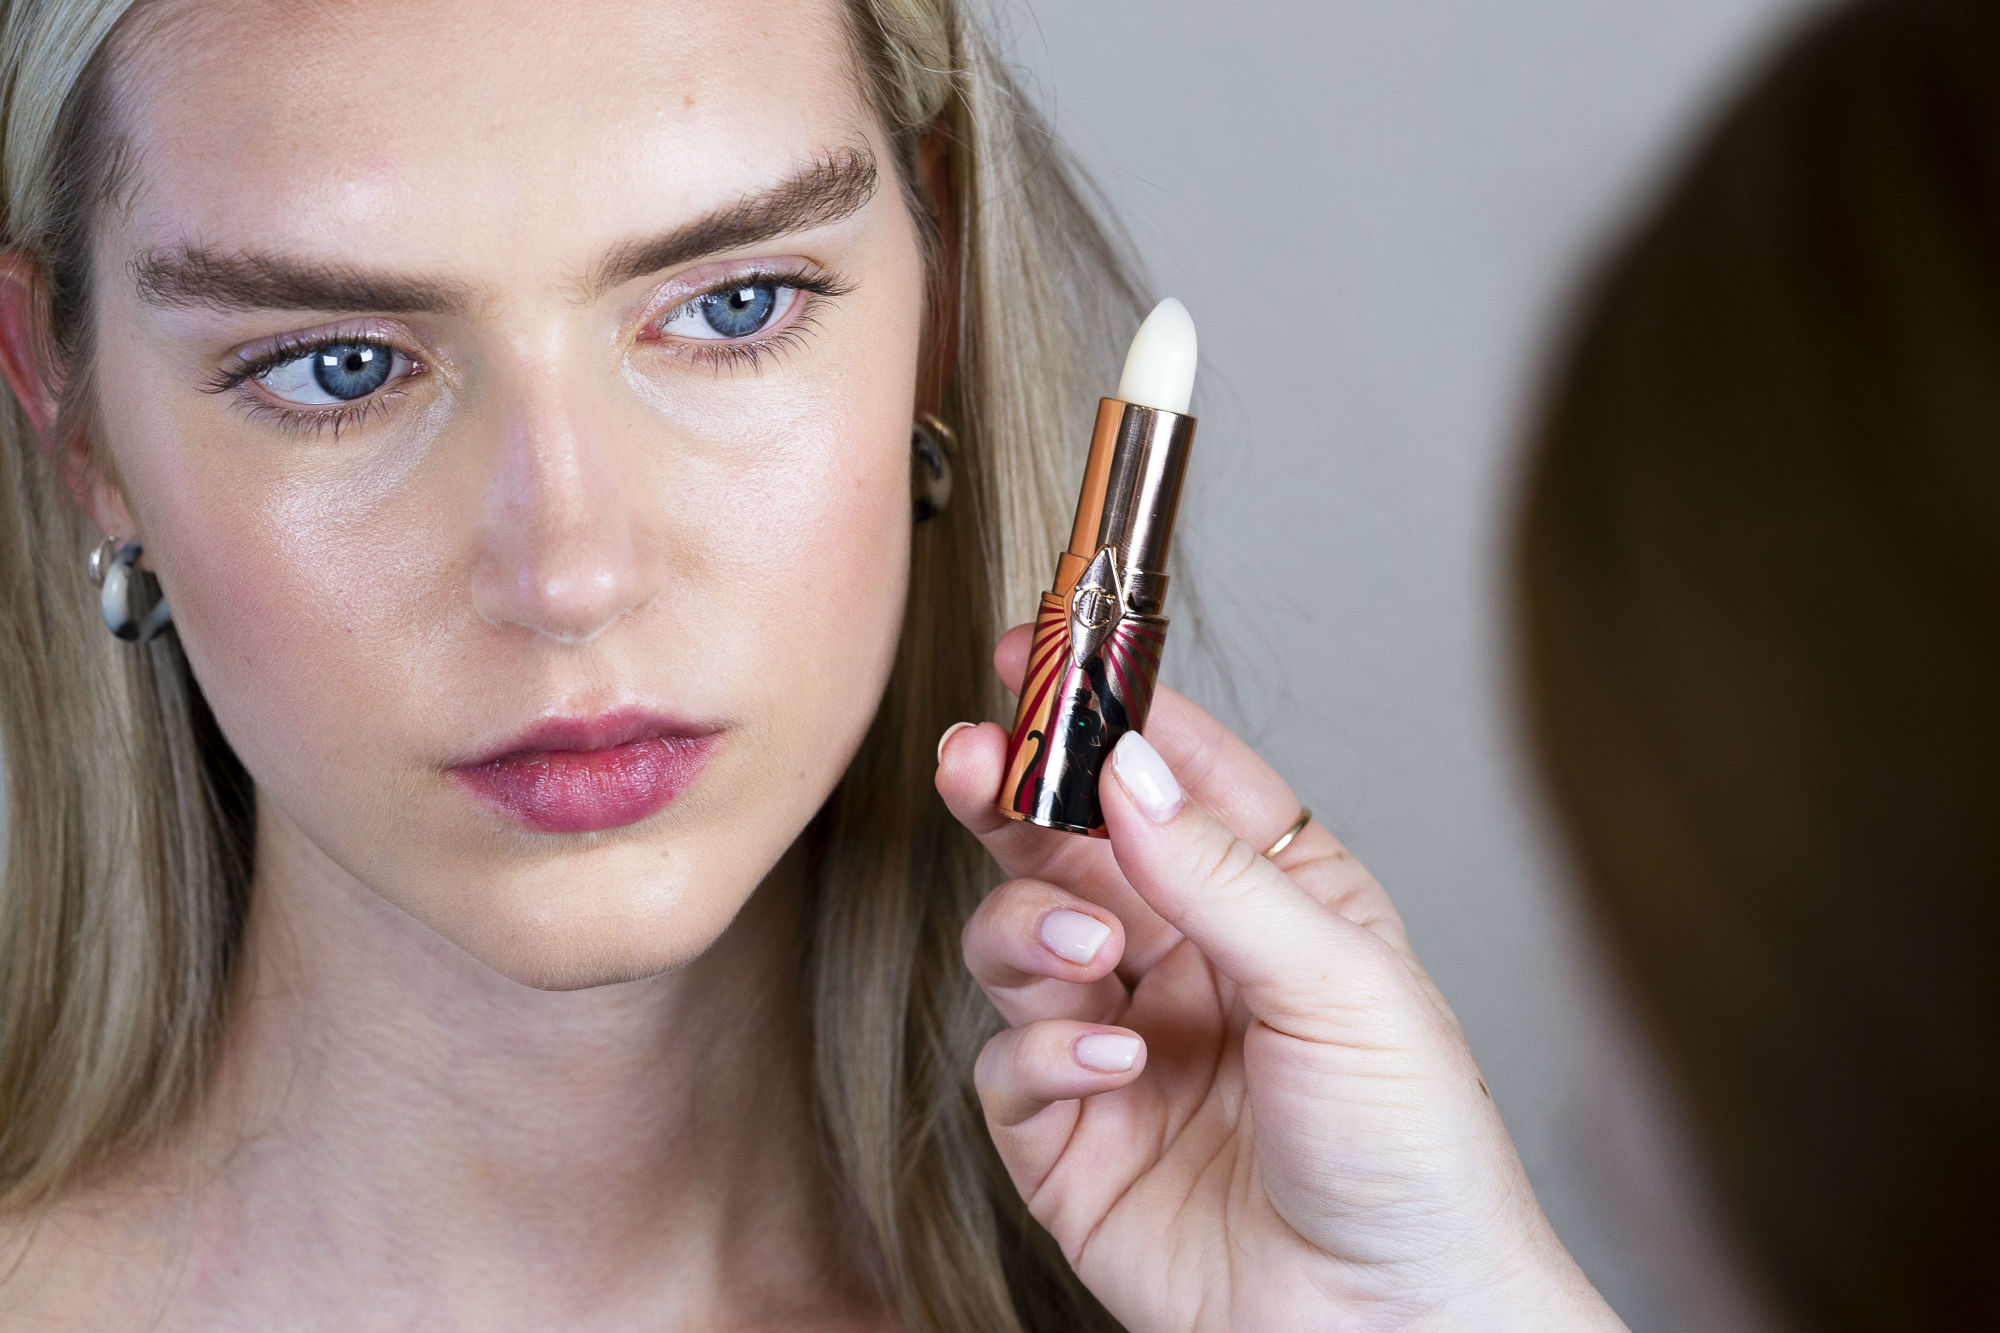 Here's how to create Charlotte Tilbury's barely-there beauty look